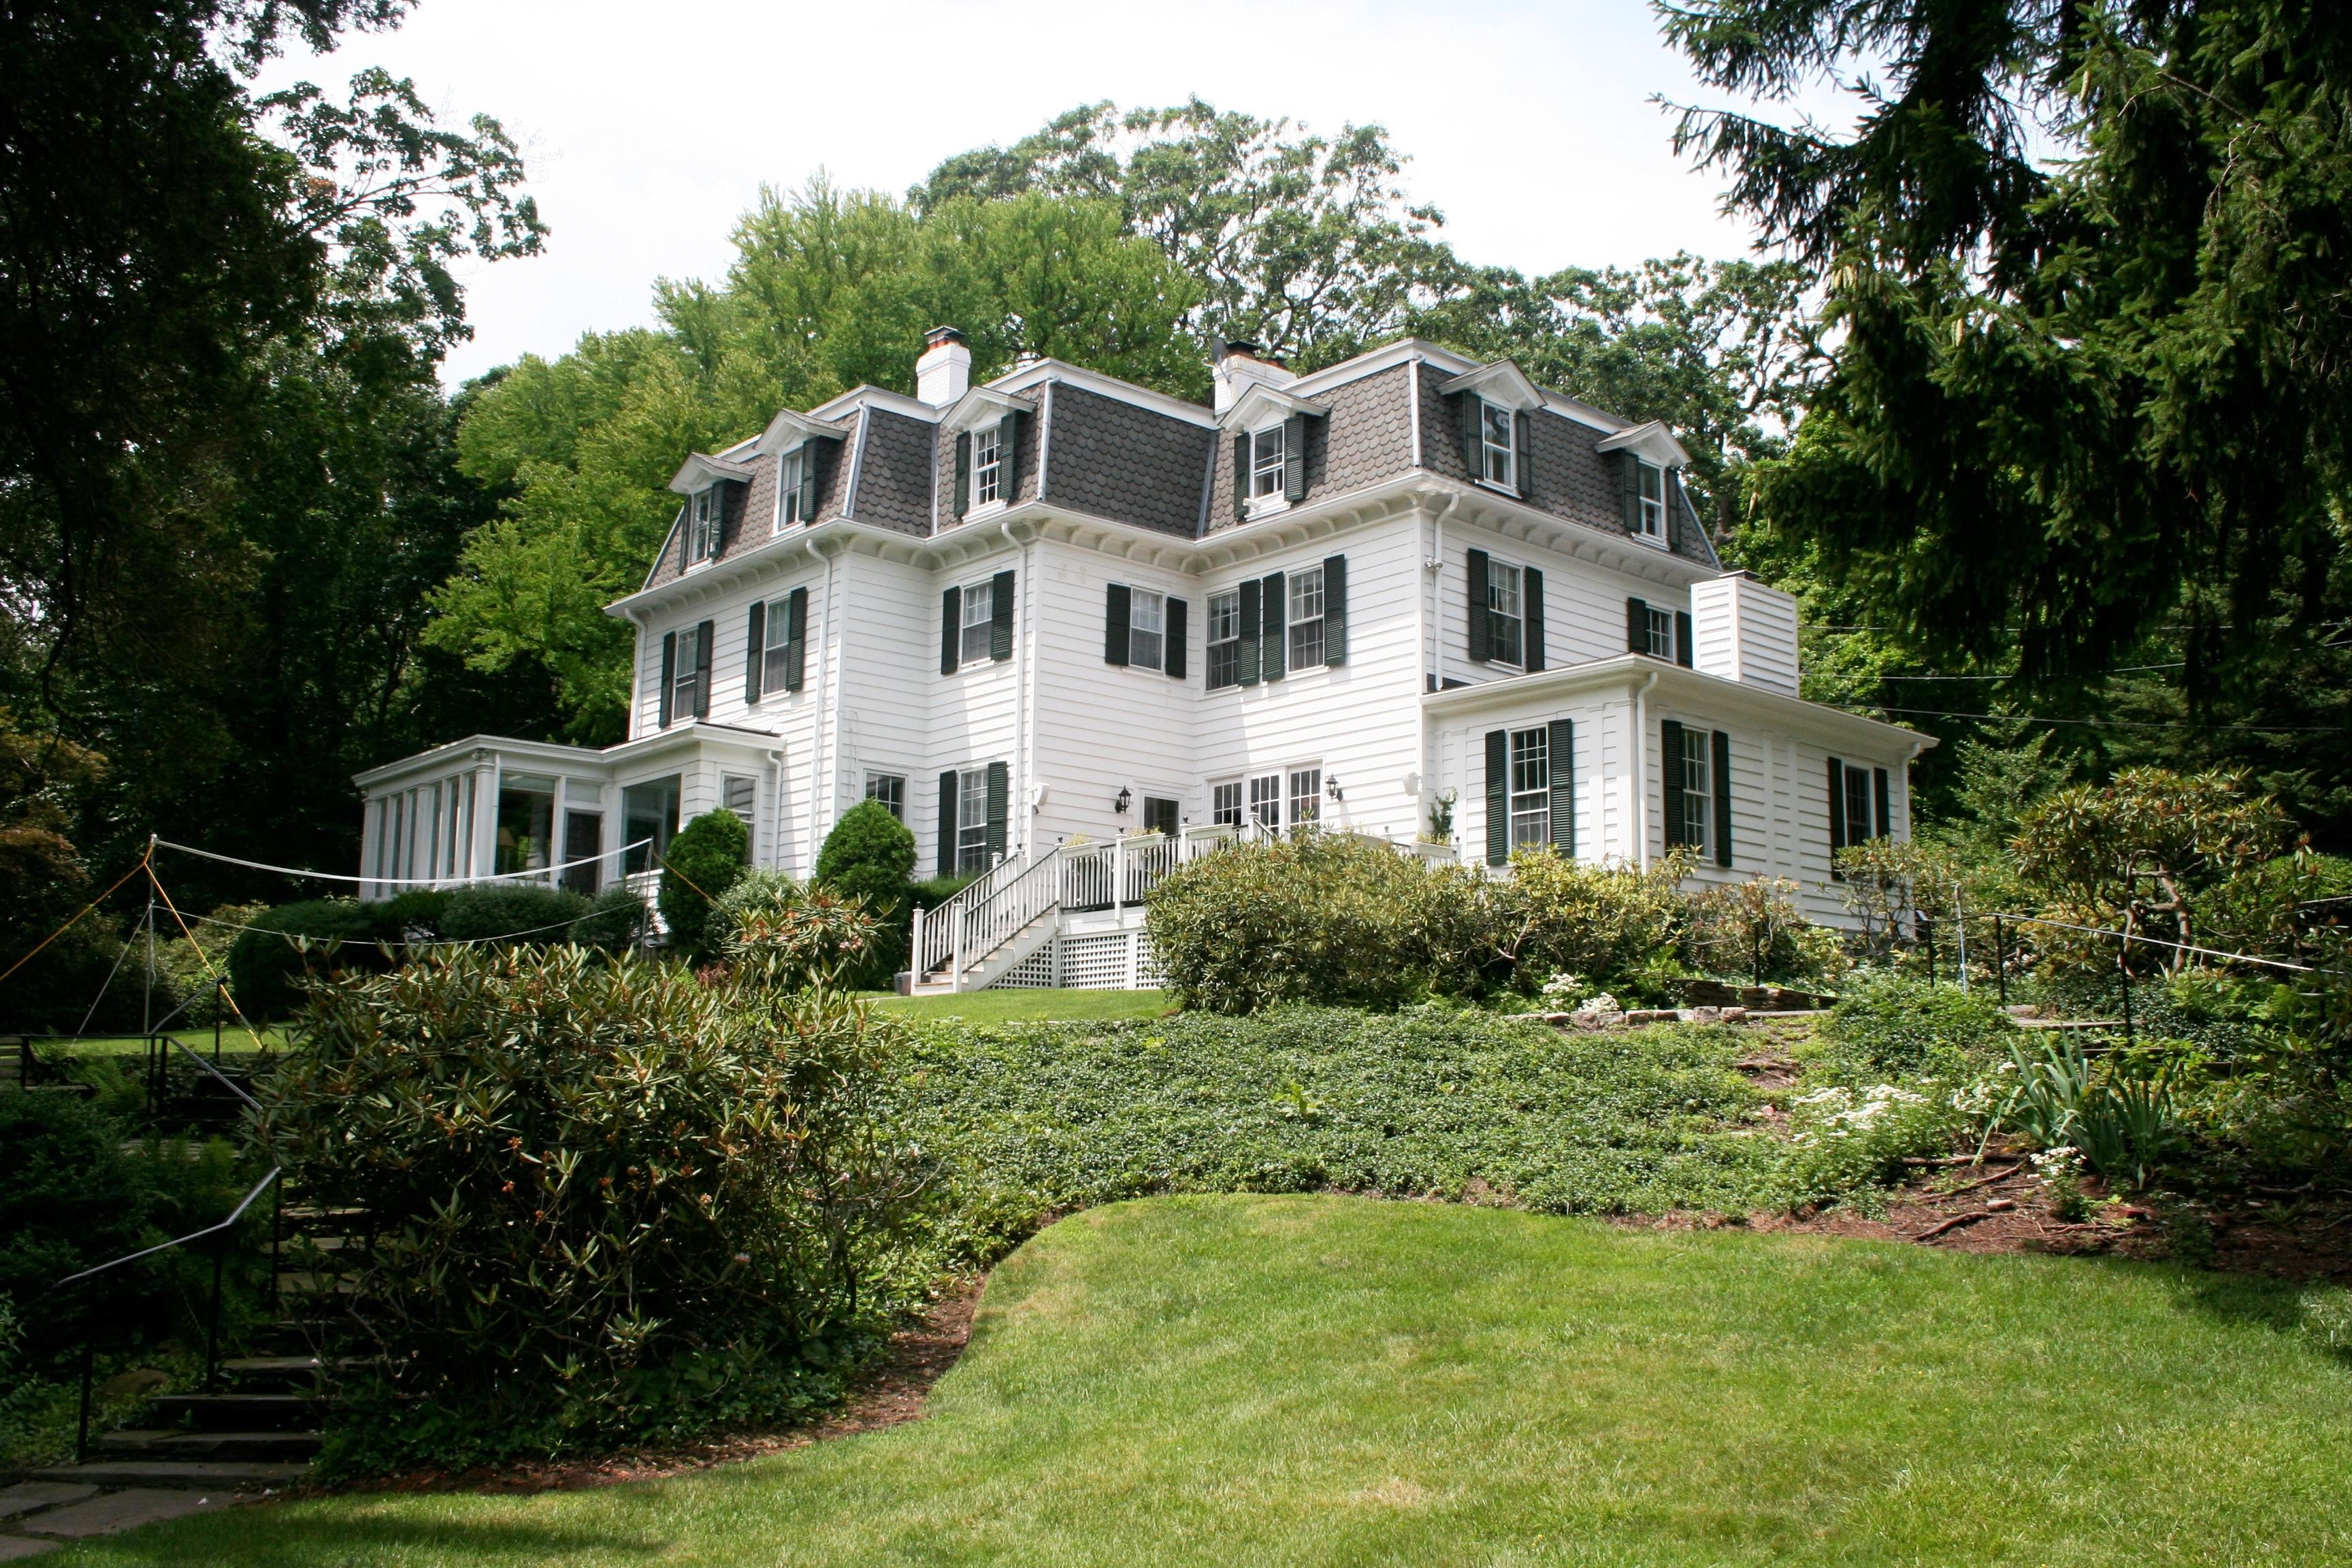 Villa per Vendita alle ore Llewellyn Park Colonial 11 Park Way West Orange, New Jersey, 07052 Stati Uniti